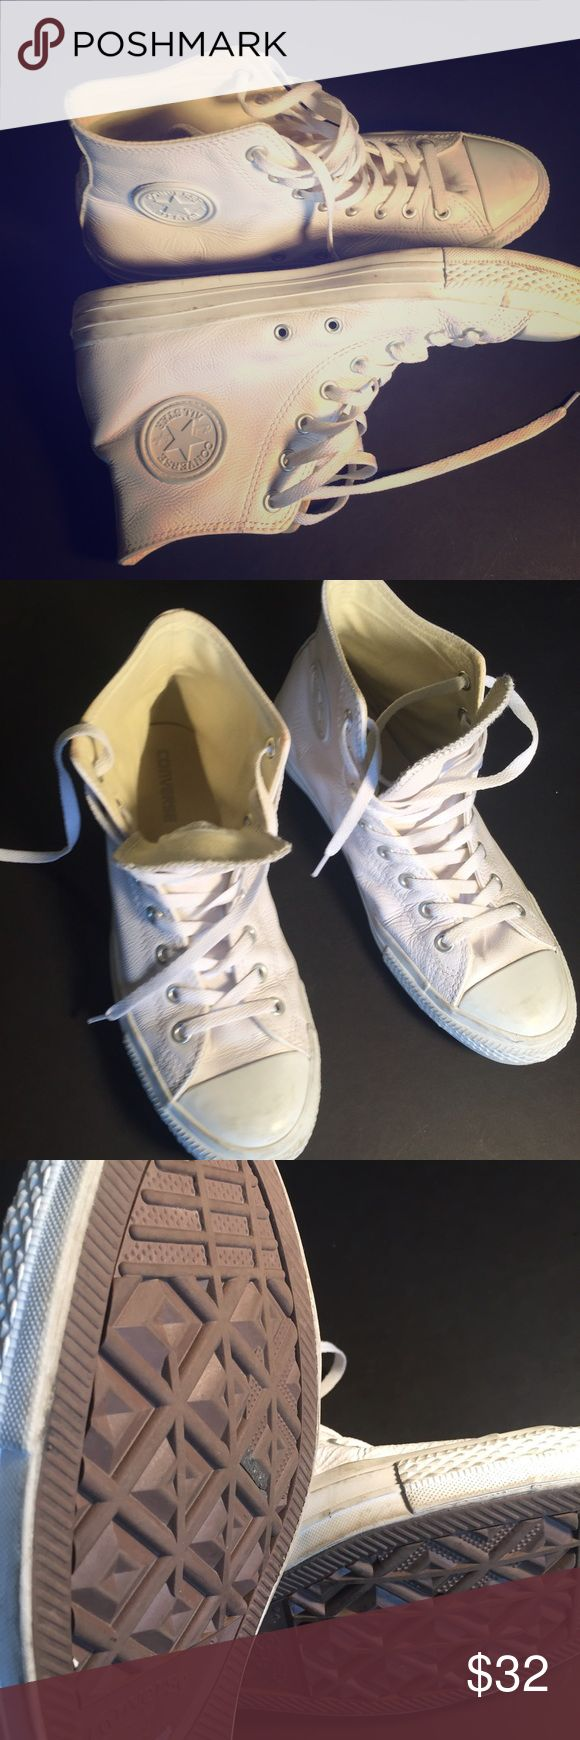 All White Chucks The authentic All Star Chuck Taylor Converse Classics. EUC, white on white. Some minor toe scuffs makes them even more appealing. Top rated seller, usually same day shipment, 4.9/5 star rated. Converse Shoes Sneakers